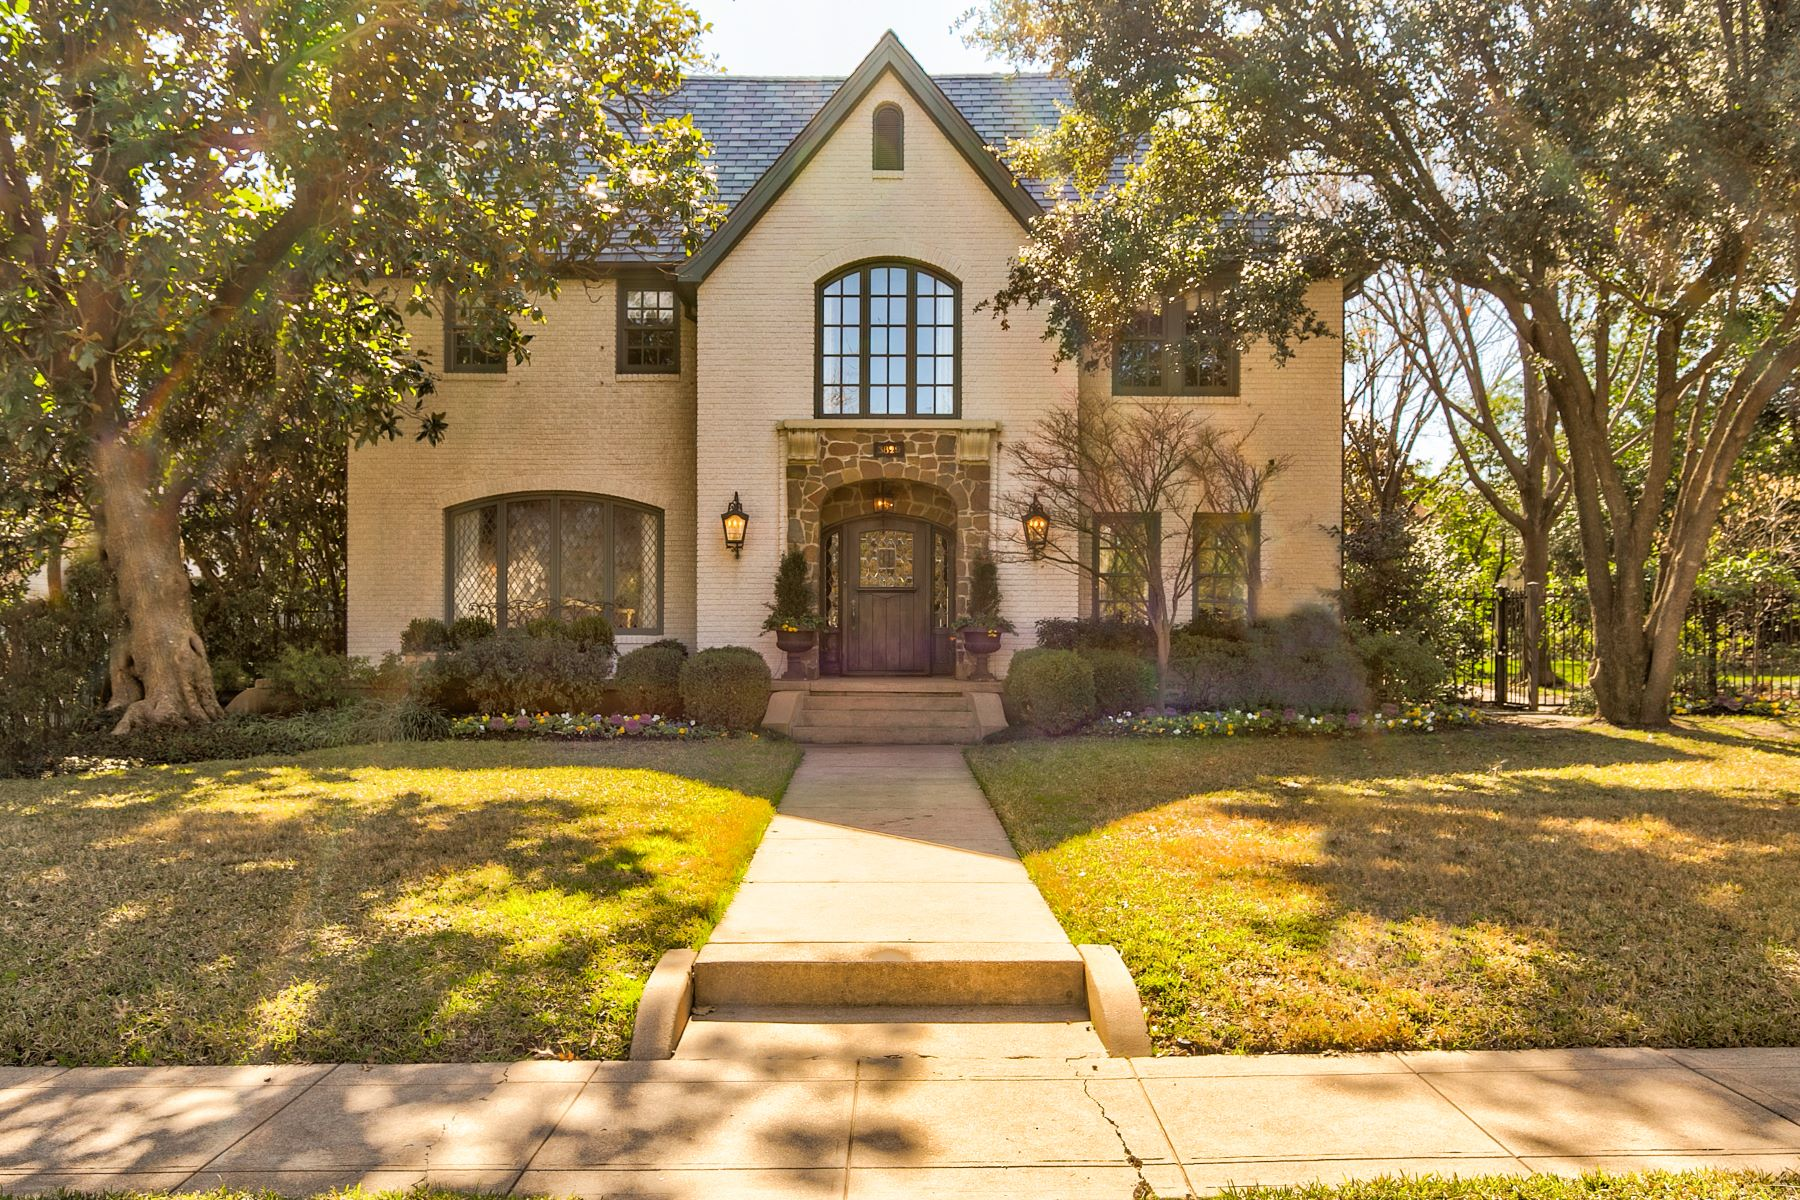 Single Family Homes for Active at First home on Monticello Drive, built in 1935 3829 Monticello Drive Fort Worth, Texas 76107 United States